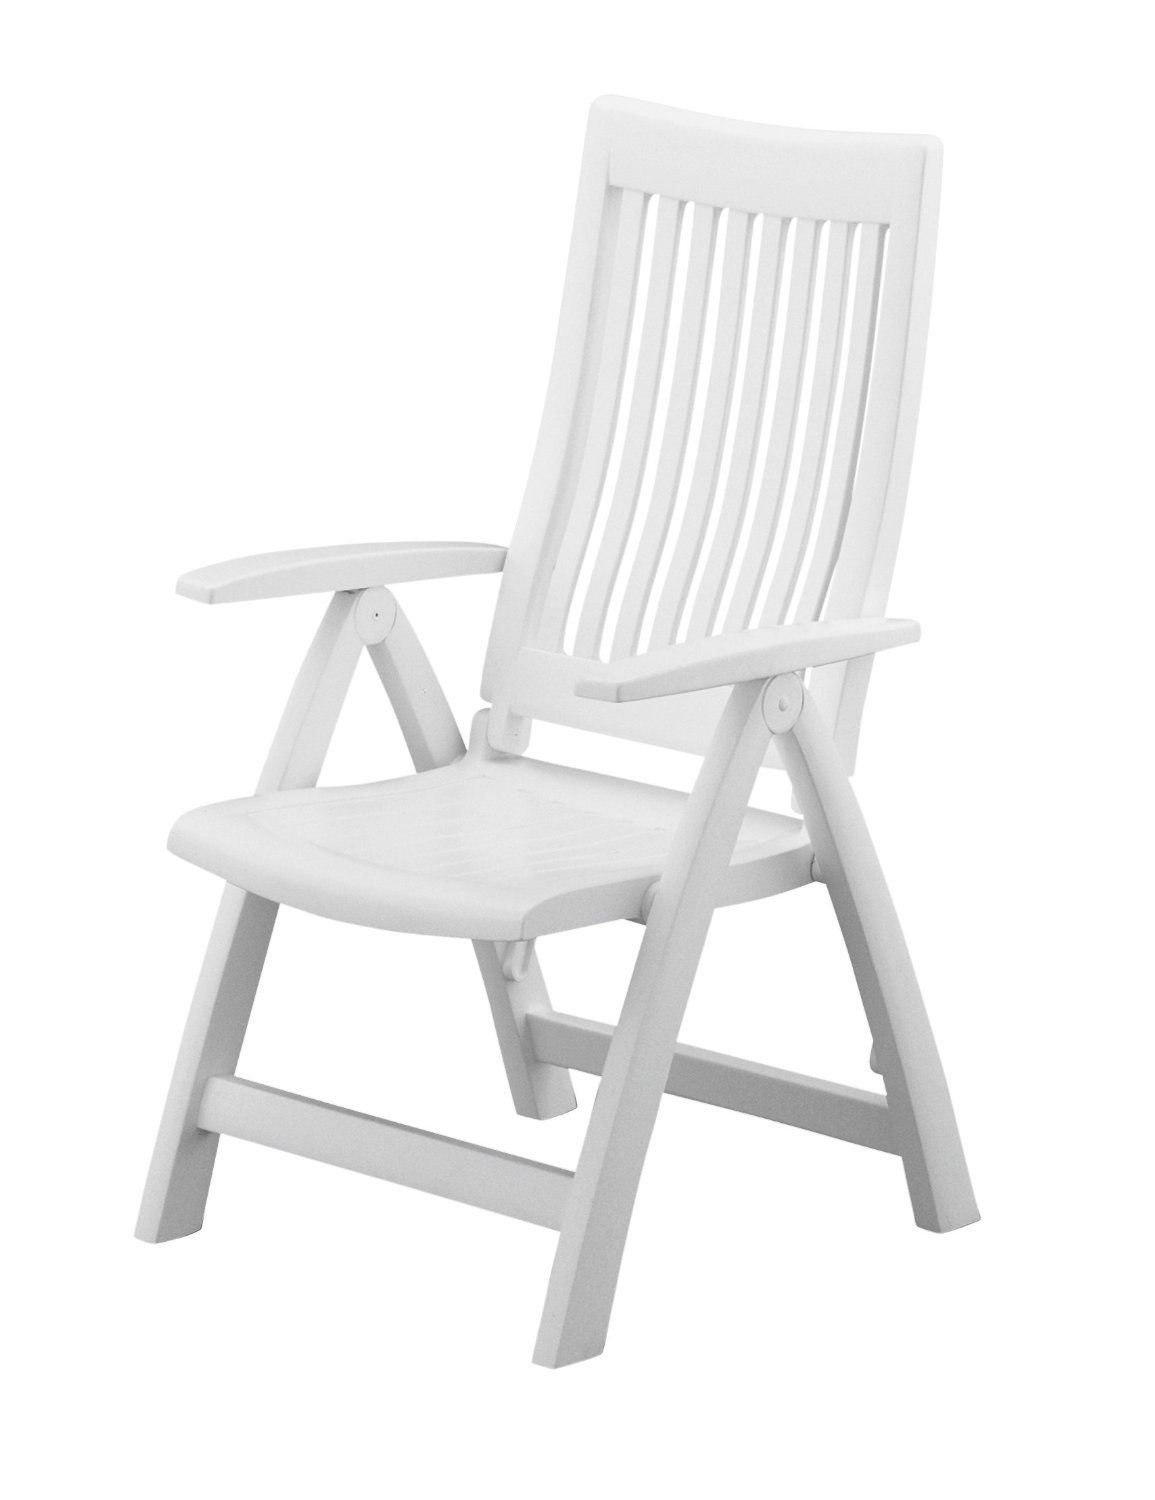 resin outdoor chairs zebra dining amazon kettler roma high back chair